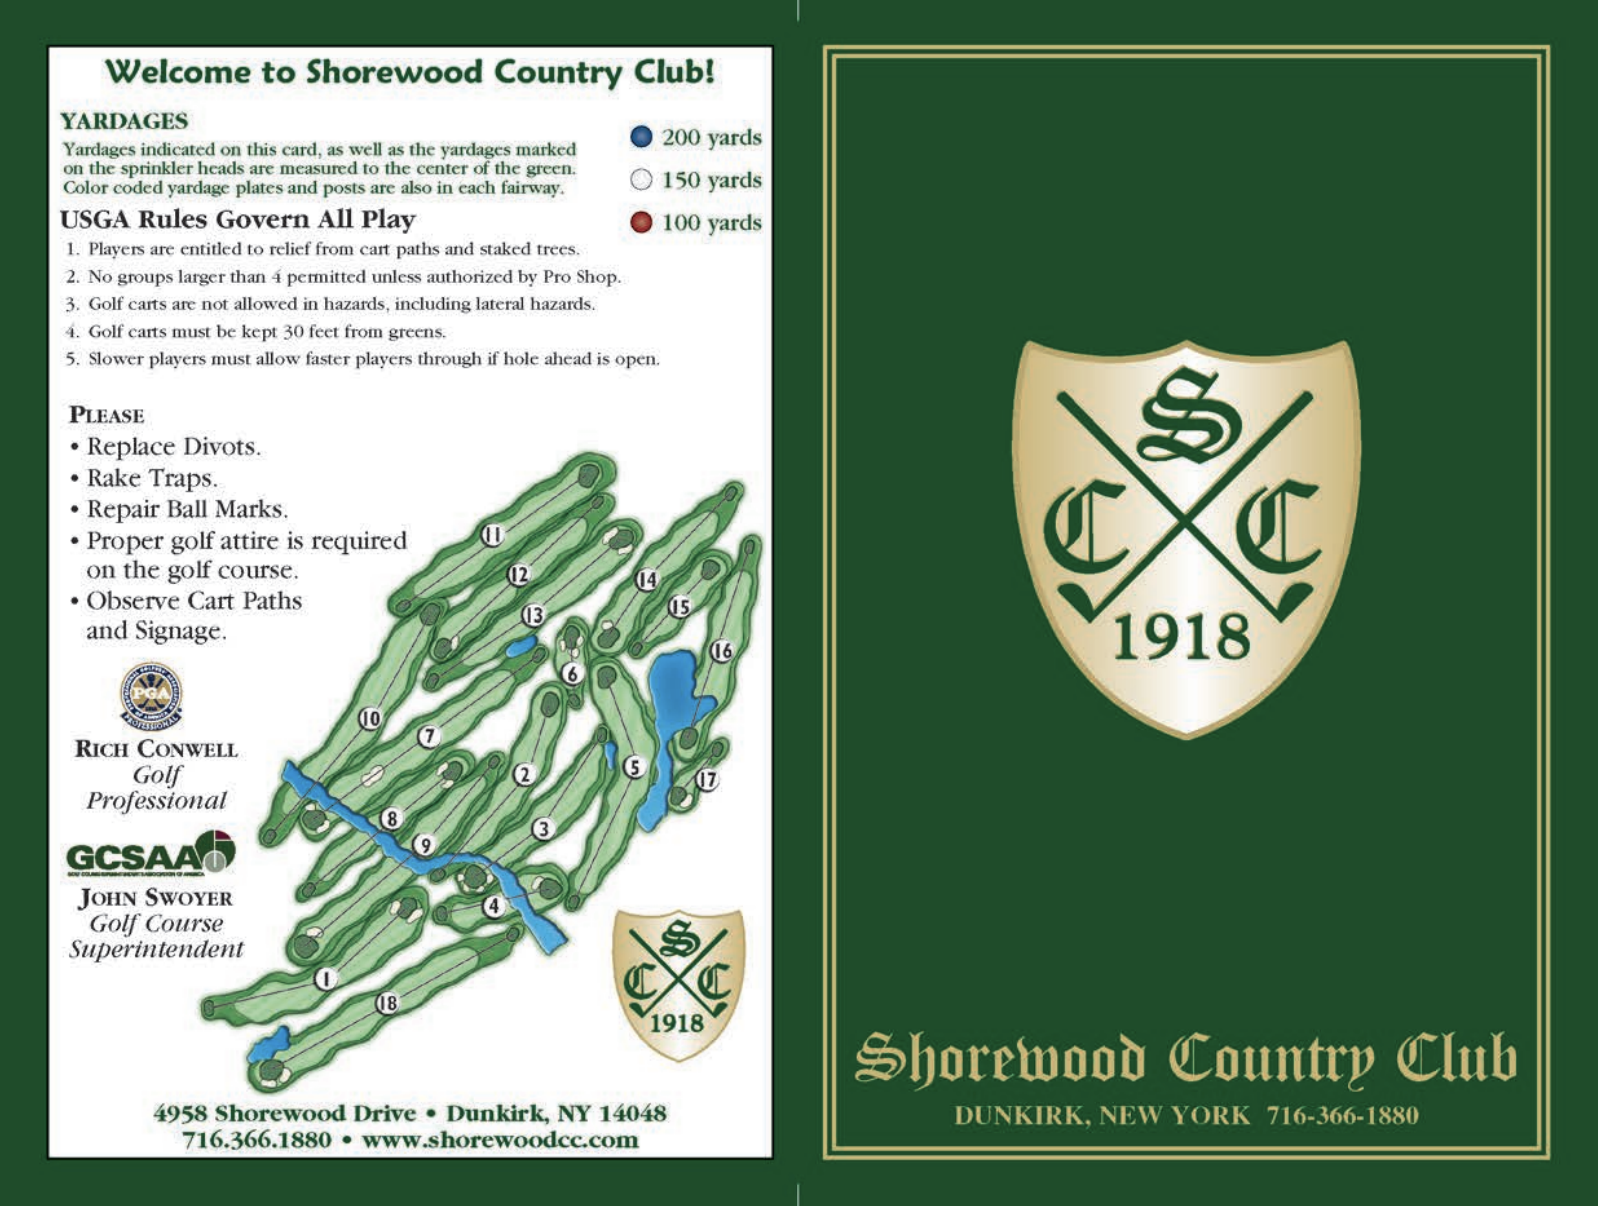 Click to View Scorecard - Golf Course